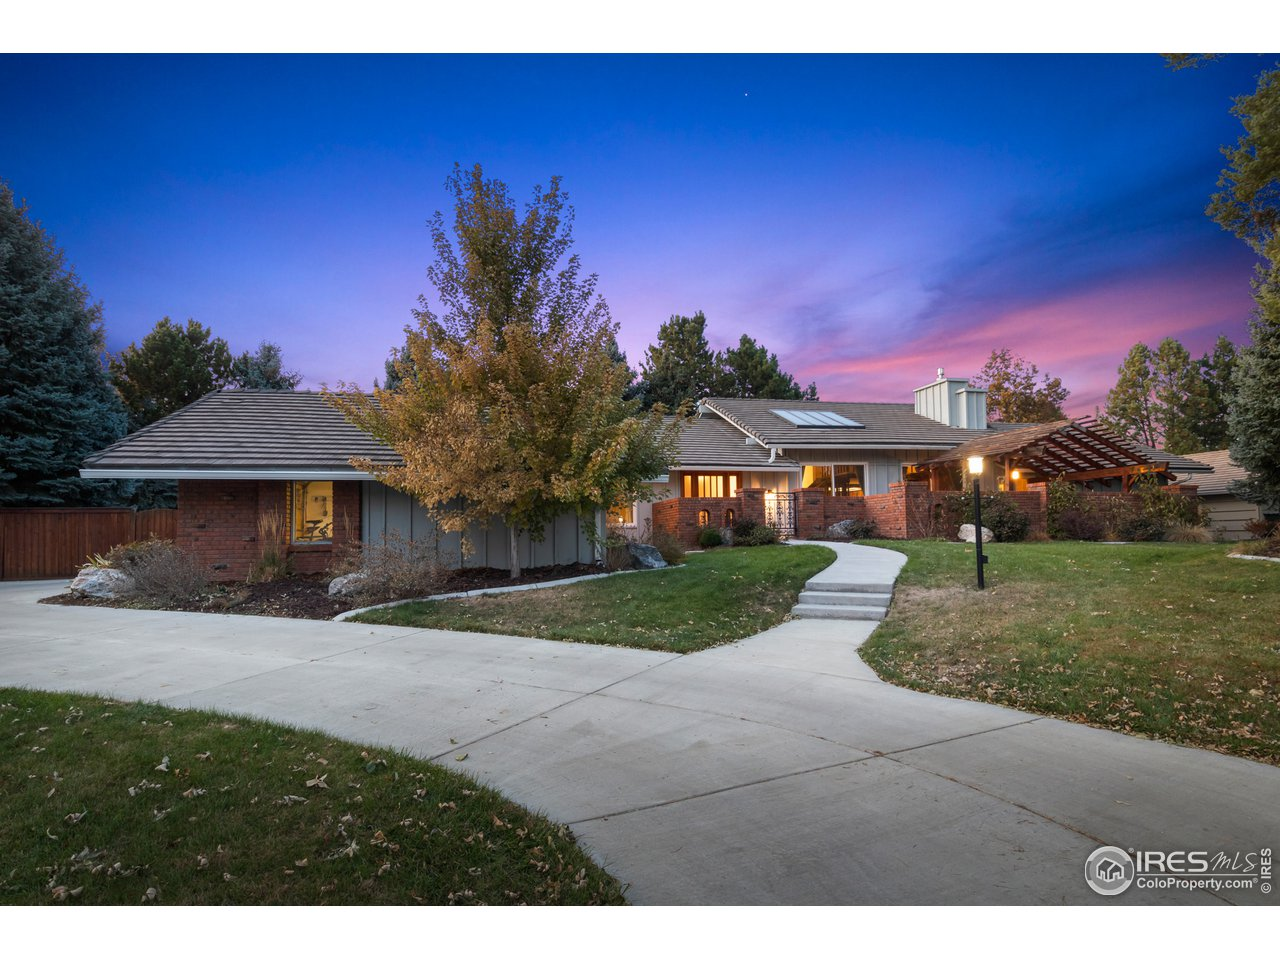 7123 Old Post Rd, Boulder CO 80301